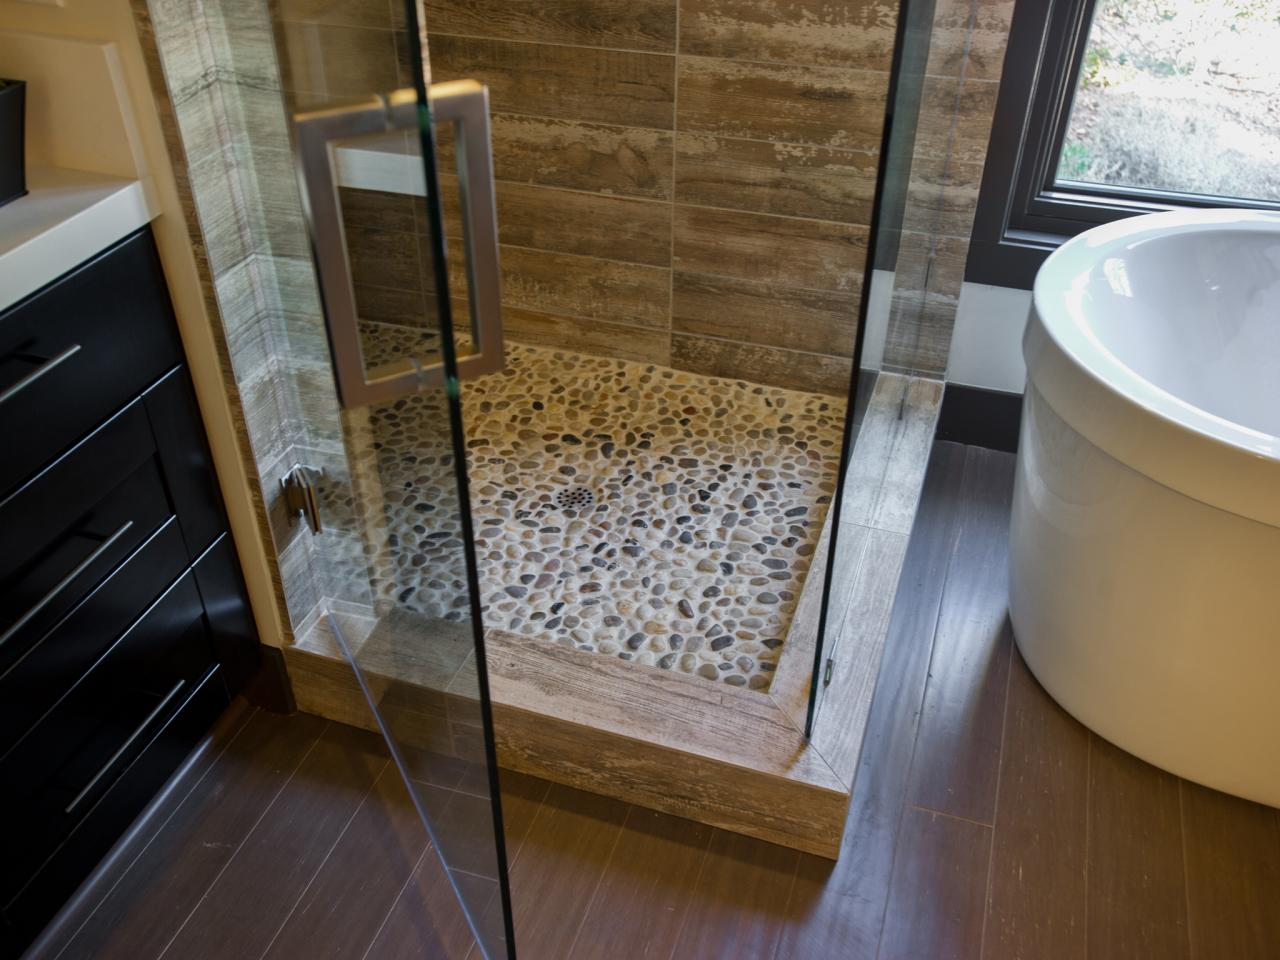 DH2014_master-bathroom-13-EPP0677-Detail-shower-floor_h.jpg.rend.hgtvcom.1280.960